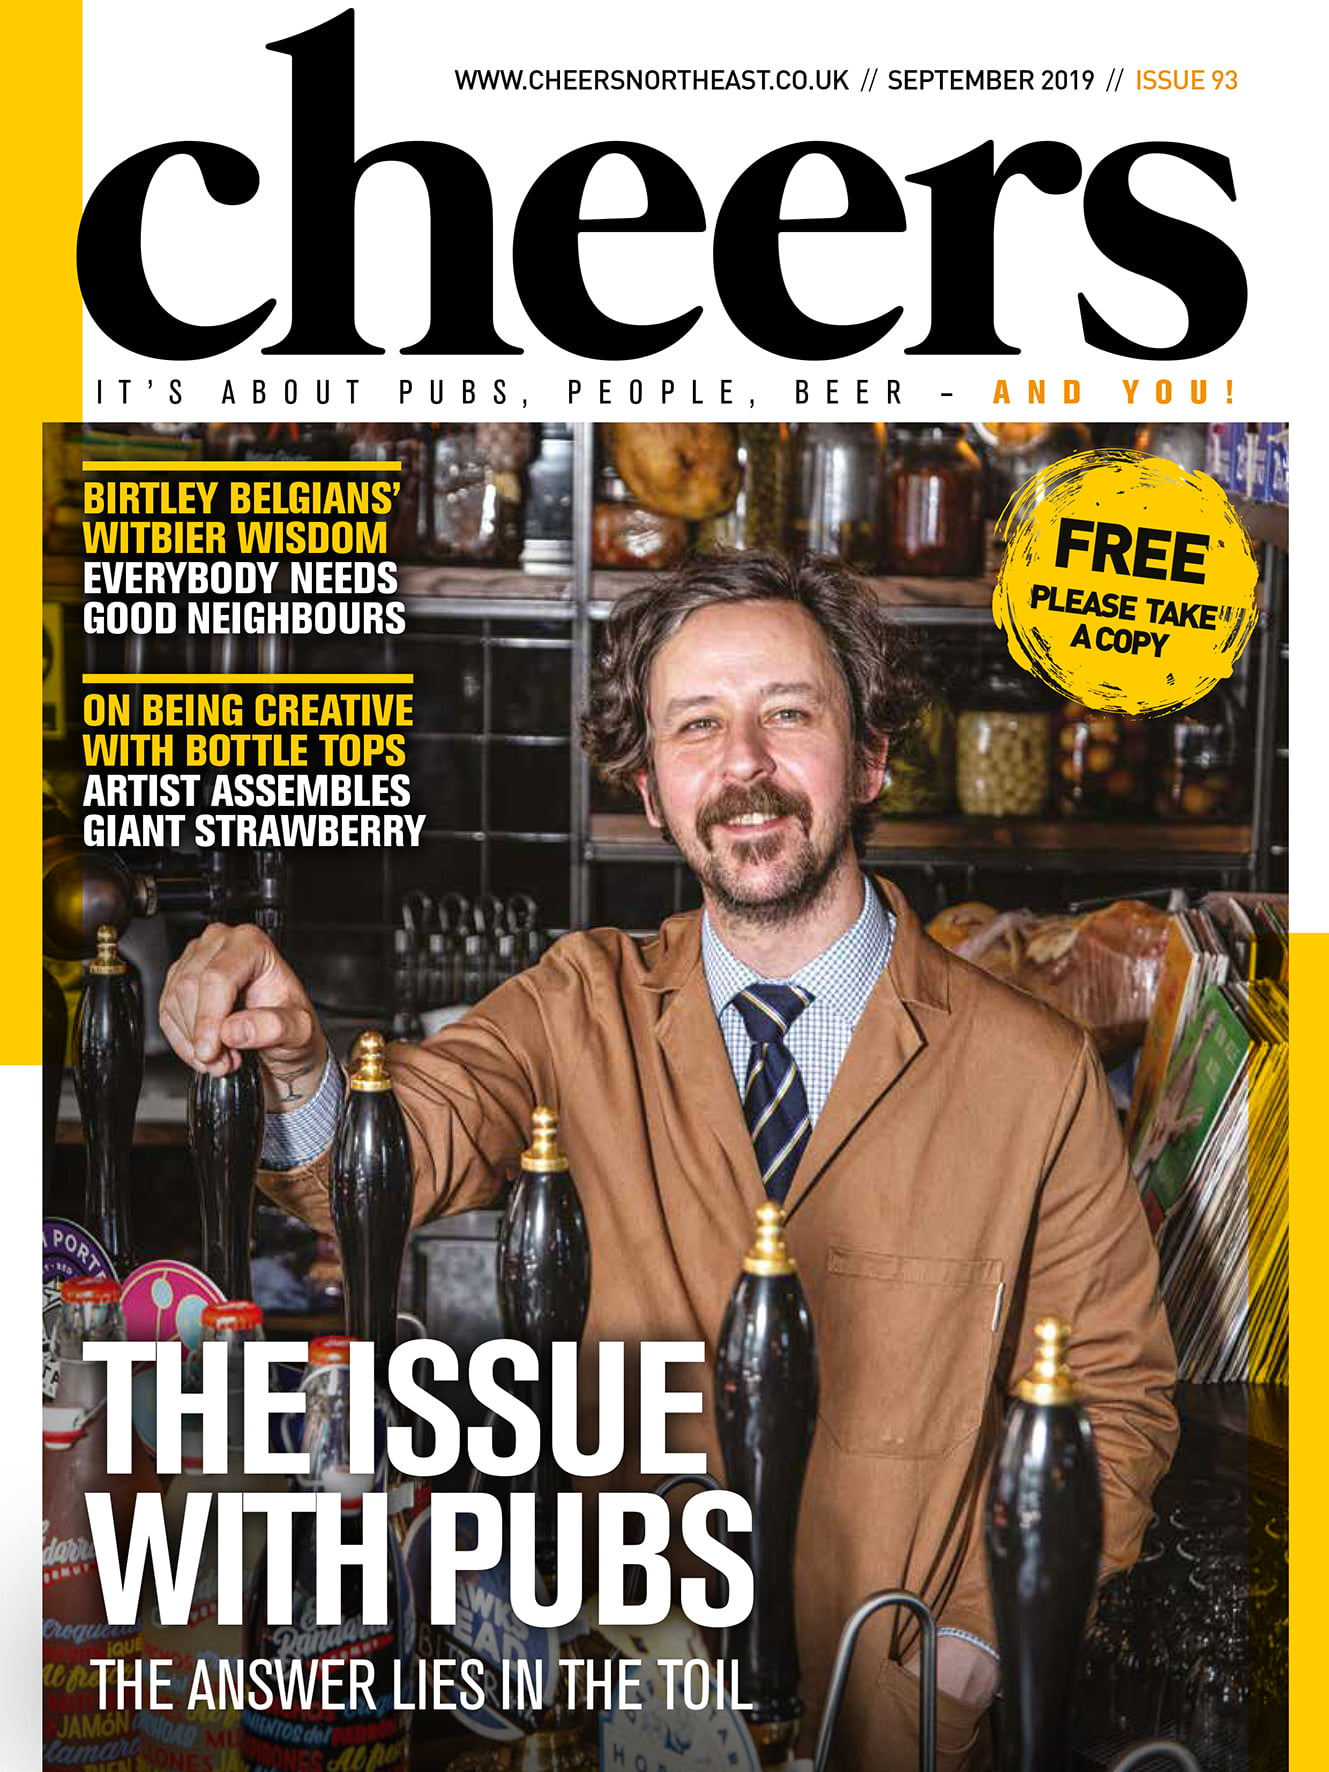 Cheers issue 93